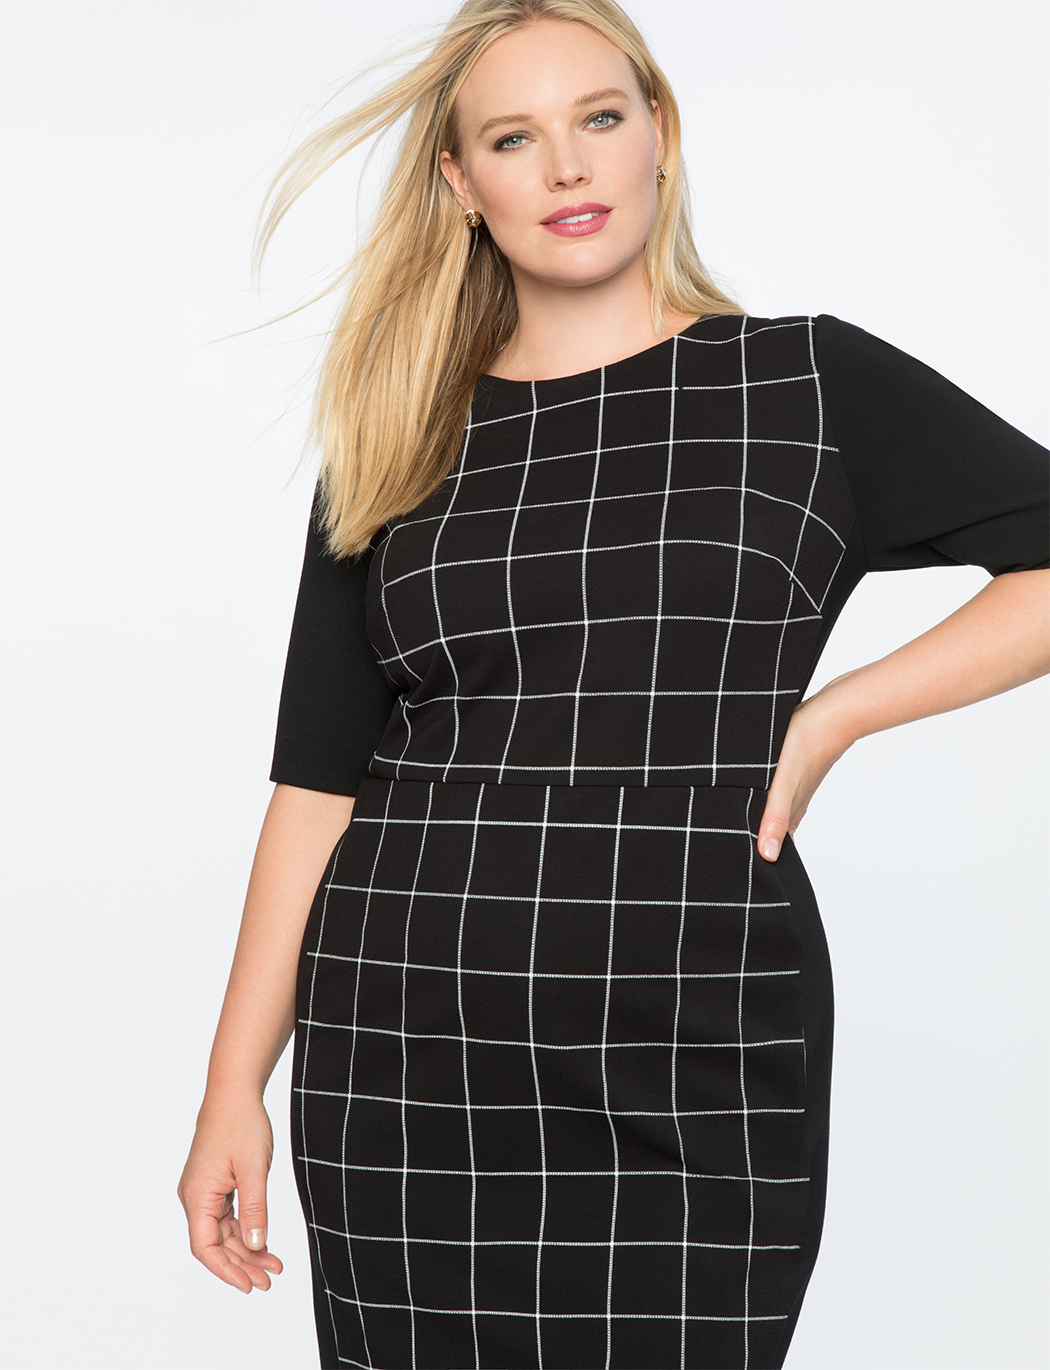 9-to-5 Windowpane Work Dress | Women\'s Plus Size Dresses | ELOQUII